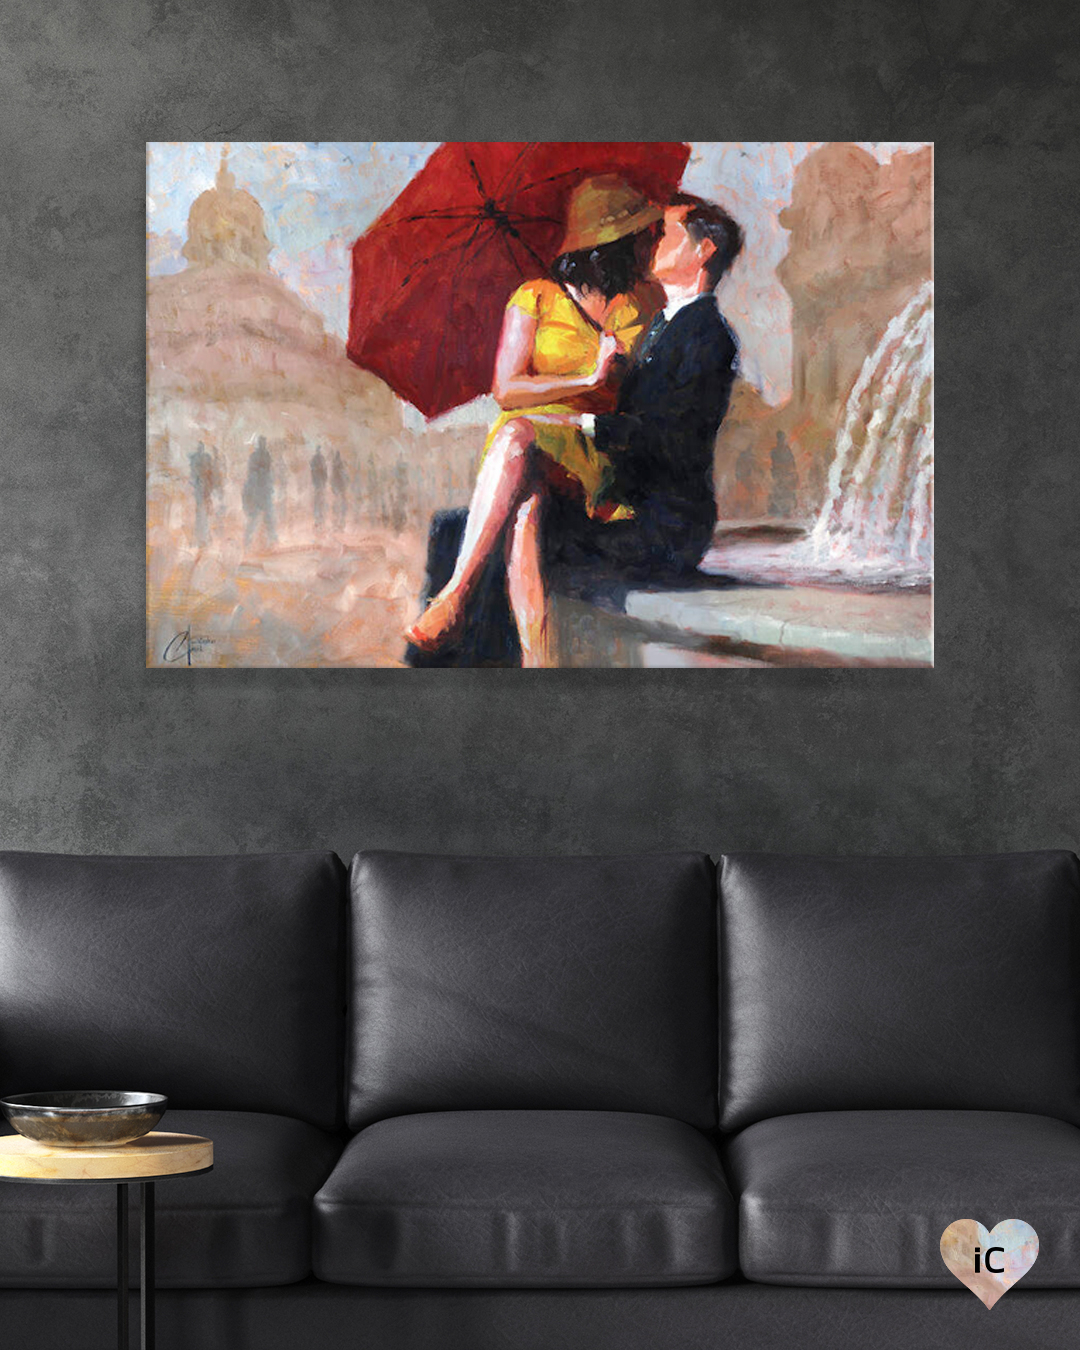 woman holding a red umbrella wearing a yellow dress and hat sitting on man who's wearing a suit's lap while kissing near a fountain